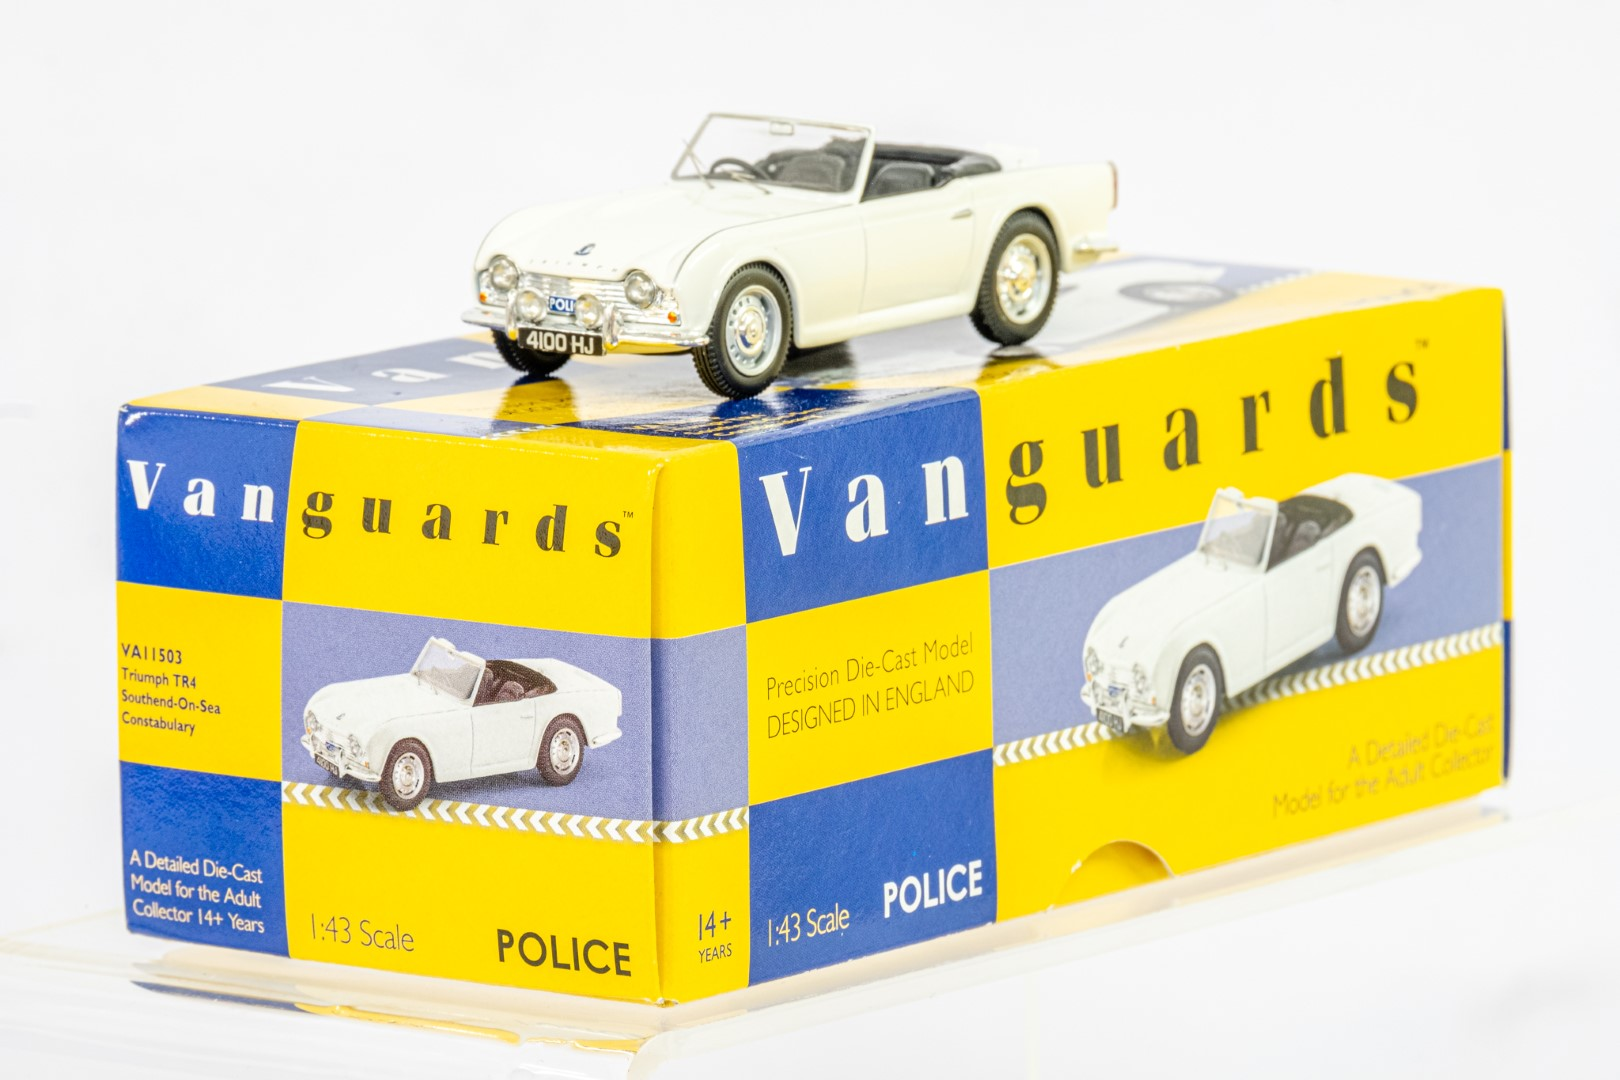 Vanguards Triumph TR4 - Southend On Sea Constabulary - Image 3 of 6